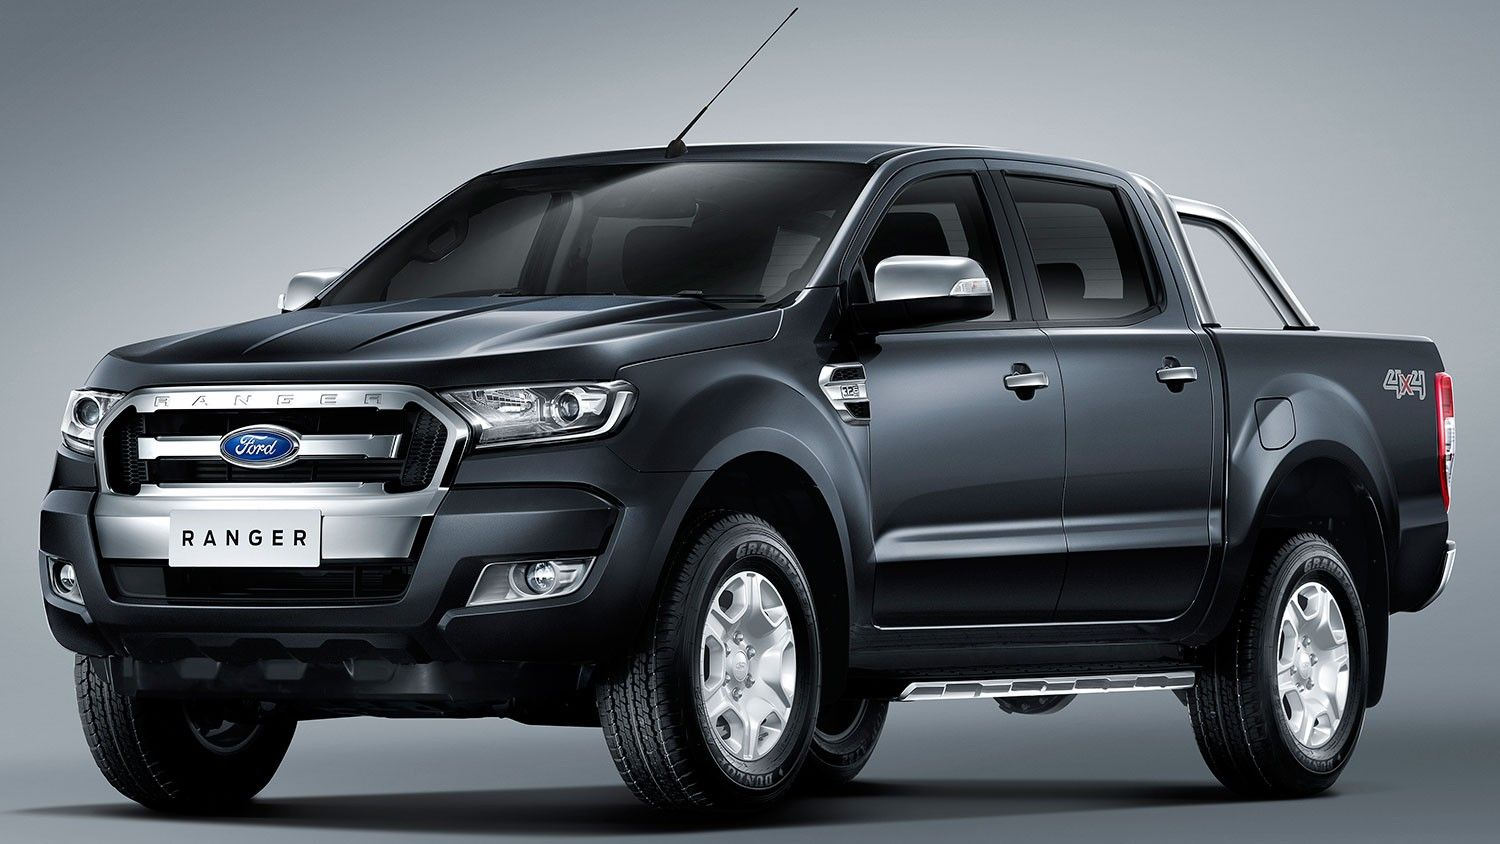 They Re Back Ford Ranger And Bronco To Return Reports Say Ford Ranger Pickup Ford Ranger Ford Ranger Price